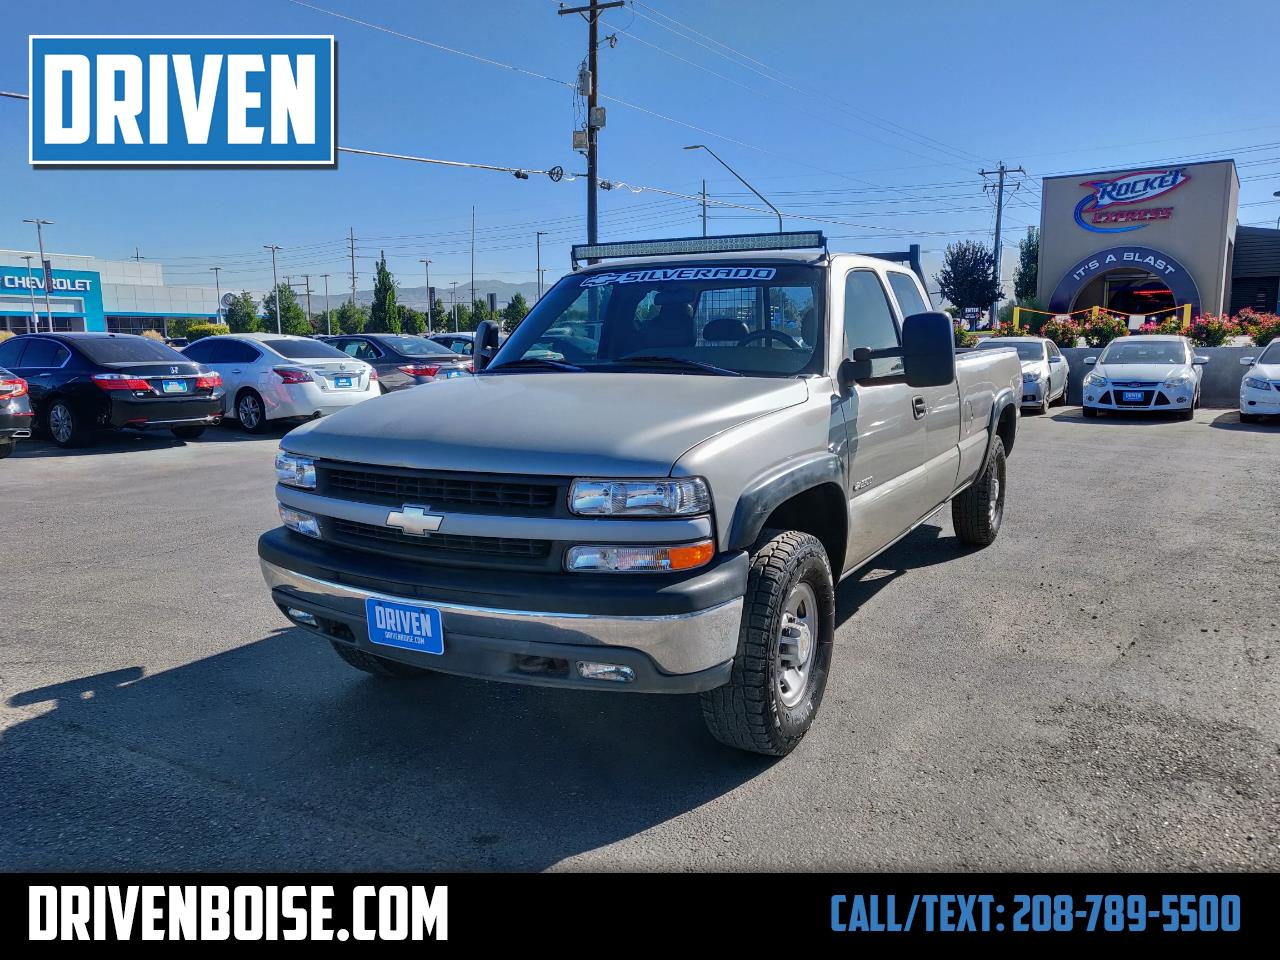 2000 Chevrolet Silverado 2500 Ext. Cab 3-Door Long Bed 4WD